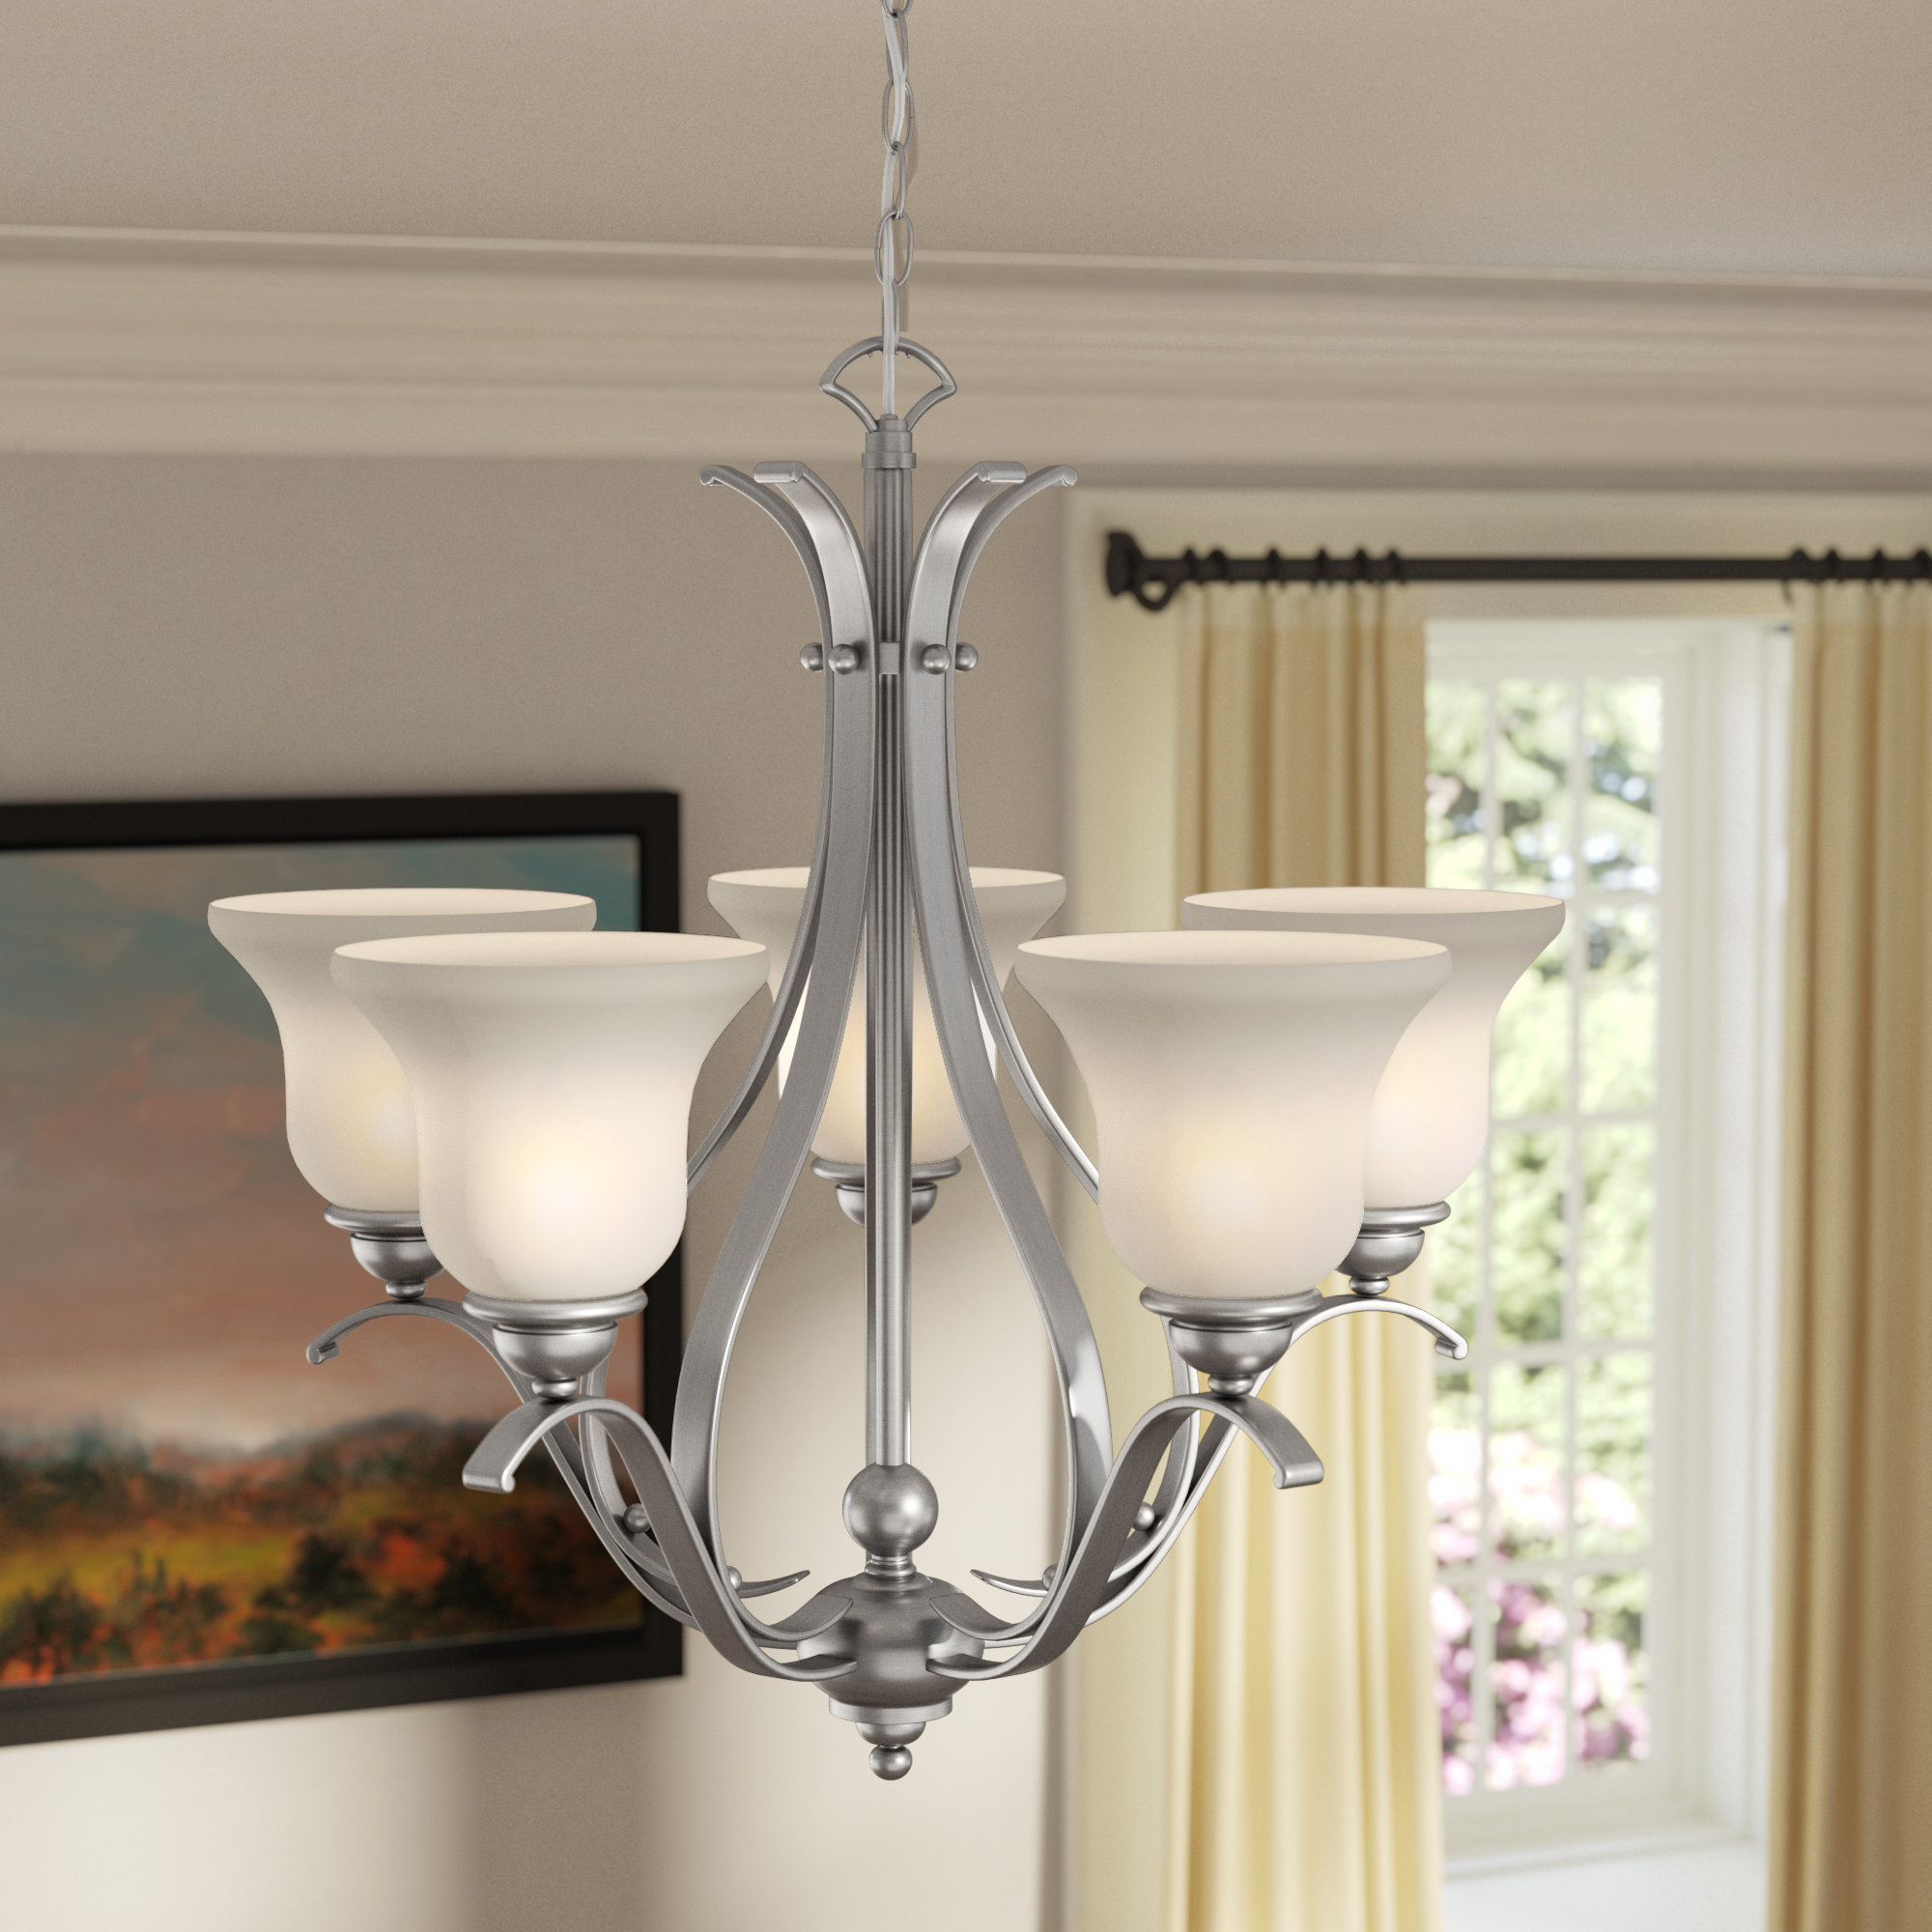 Van Horne 5 Light Shaded Chandelier Intended For Well Known Newent 5 Light Shaded Chandeliers (View 19 of 25)